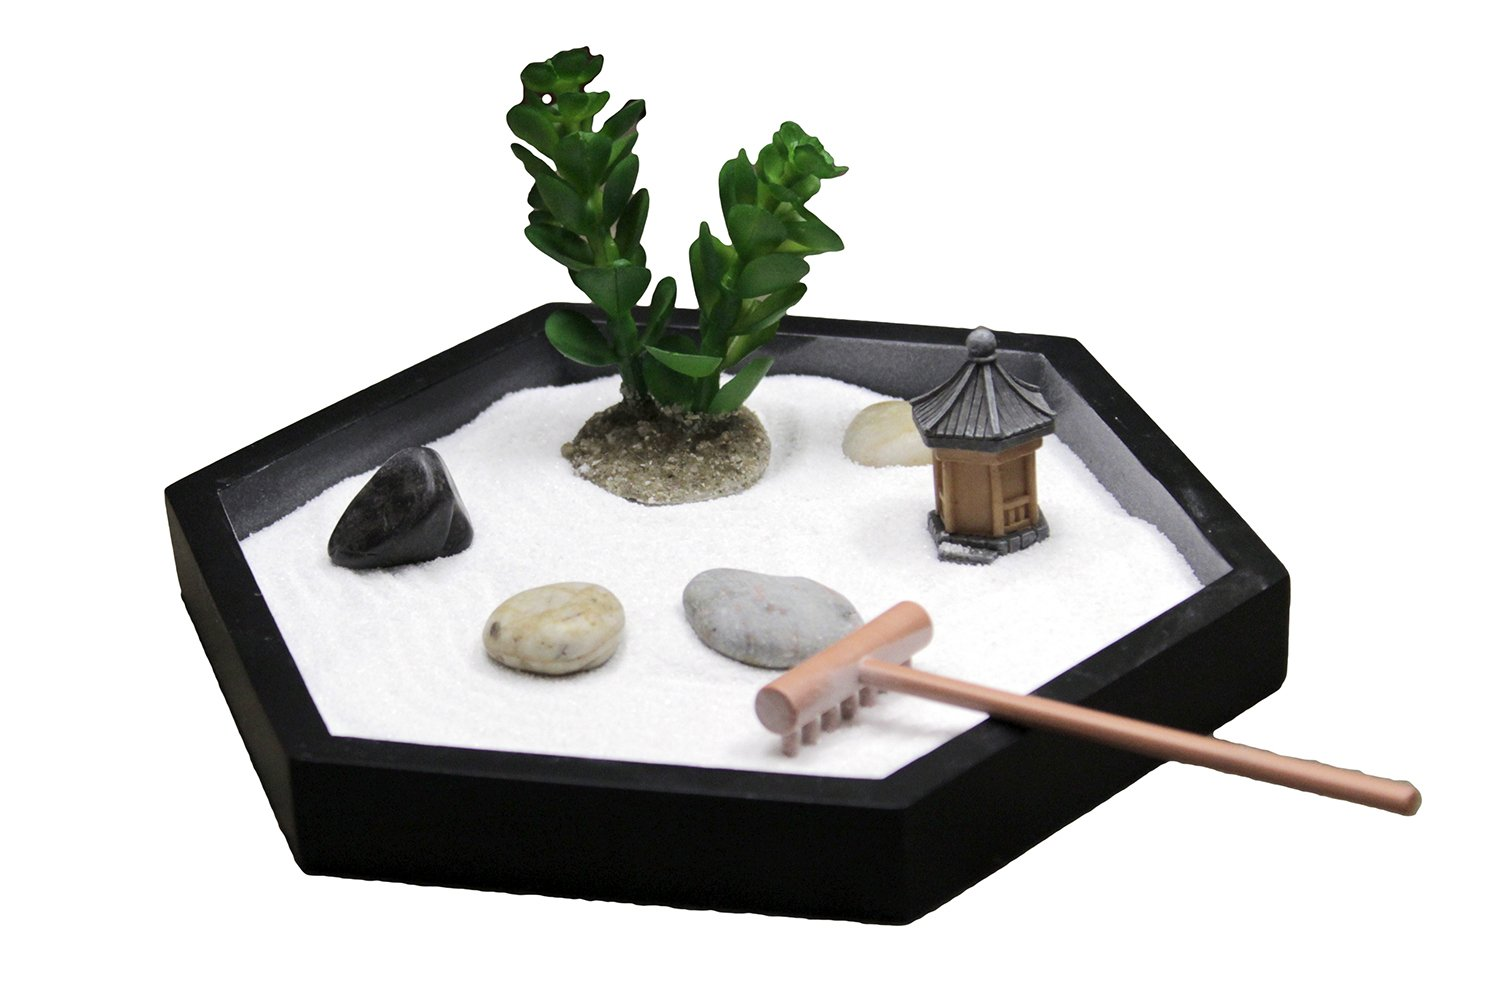 Nature's Mark, Mini Meditation Zen Garden, 7 x 6 Inches Hexagon with Succulent, Figures and Natural River Rocks (7L x 6W)